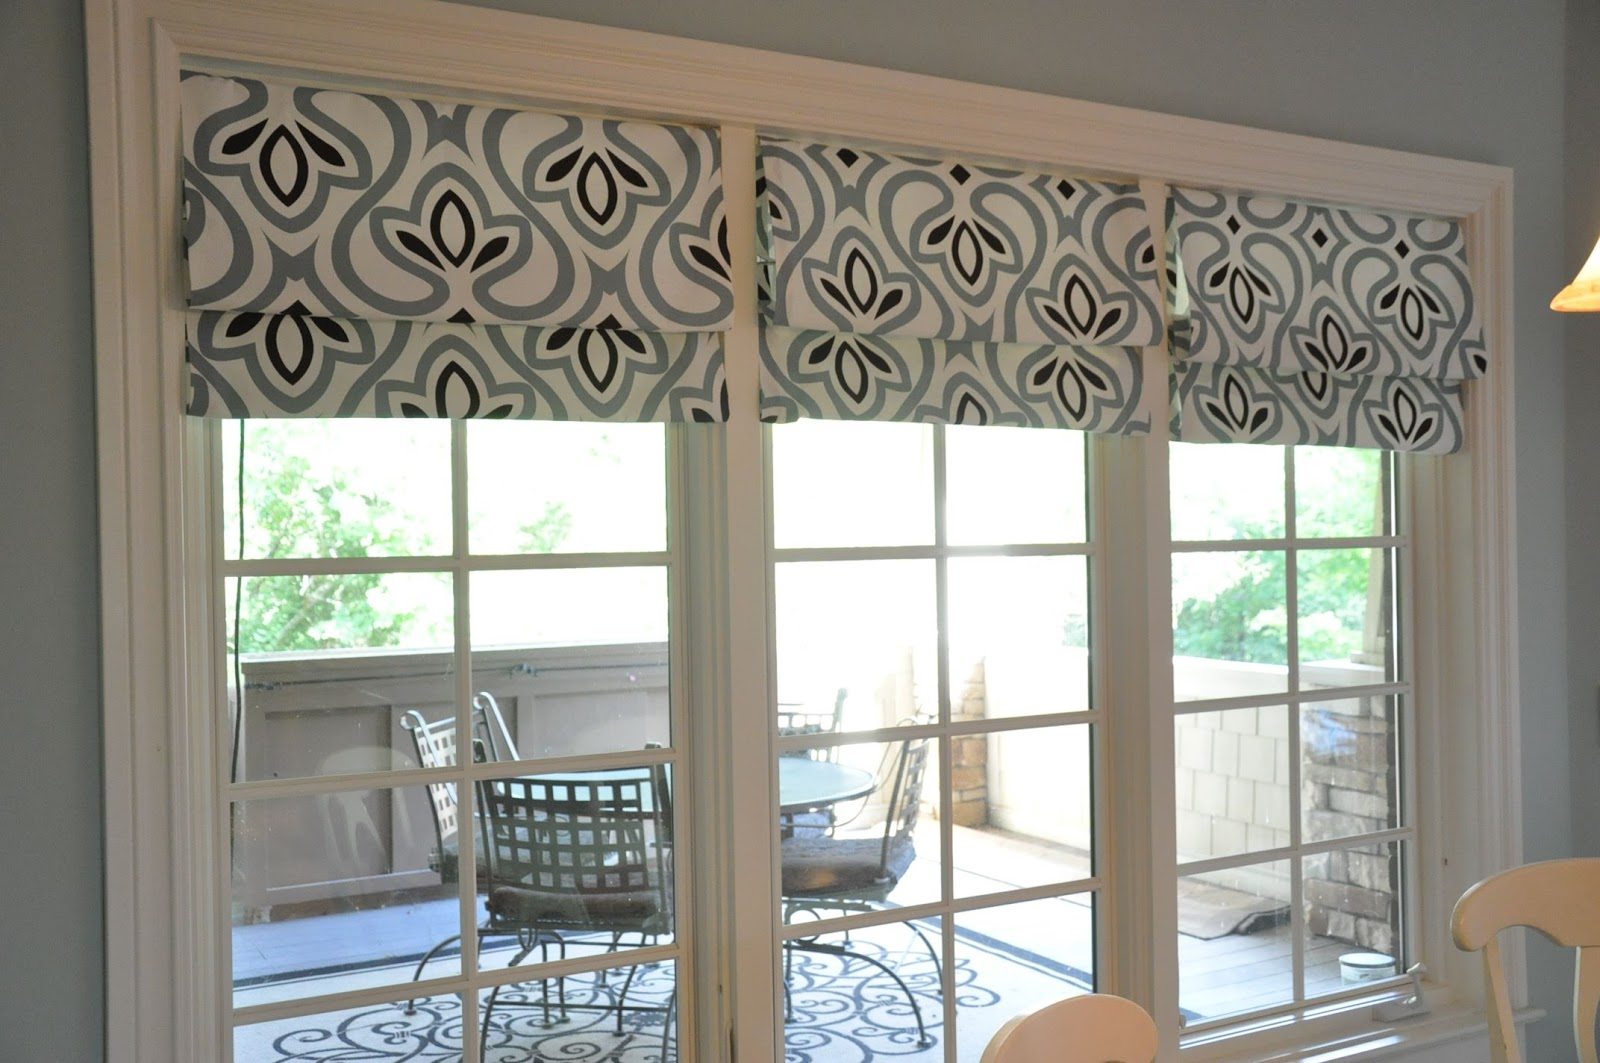 Diy Roman Shades For French Doors No Sew All Faux Roman Shade Evolution Of Style